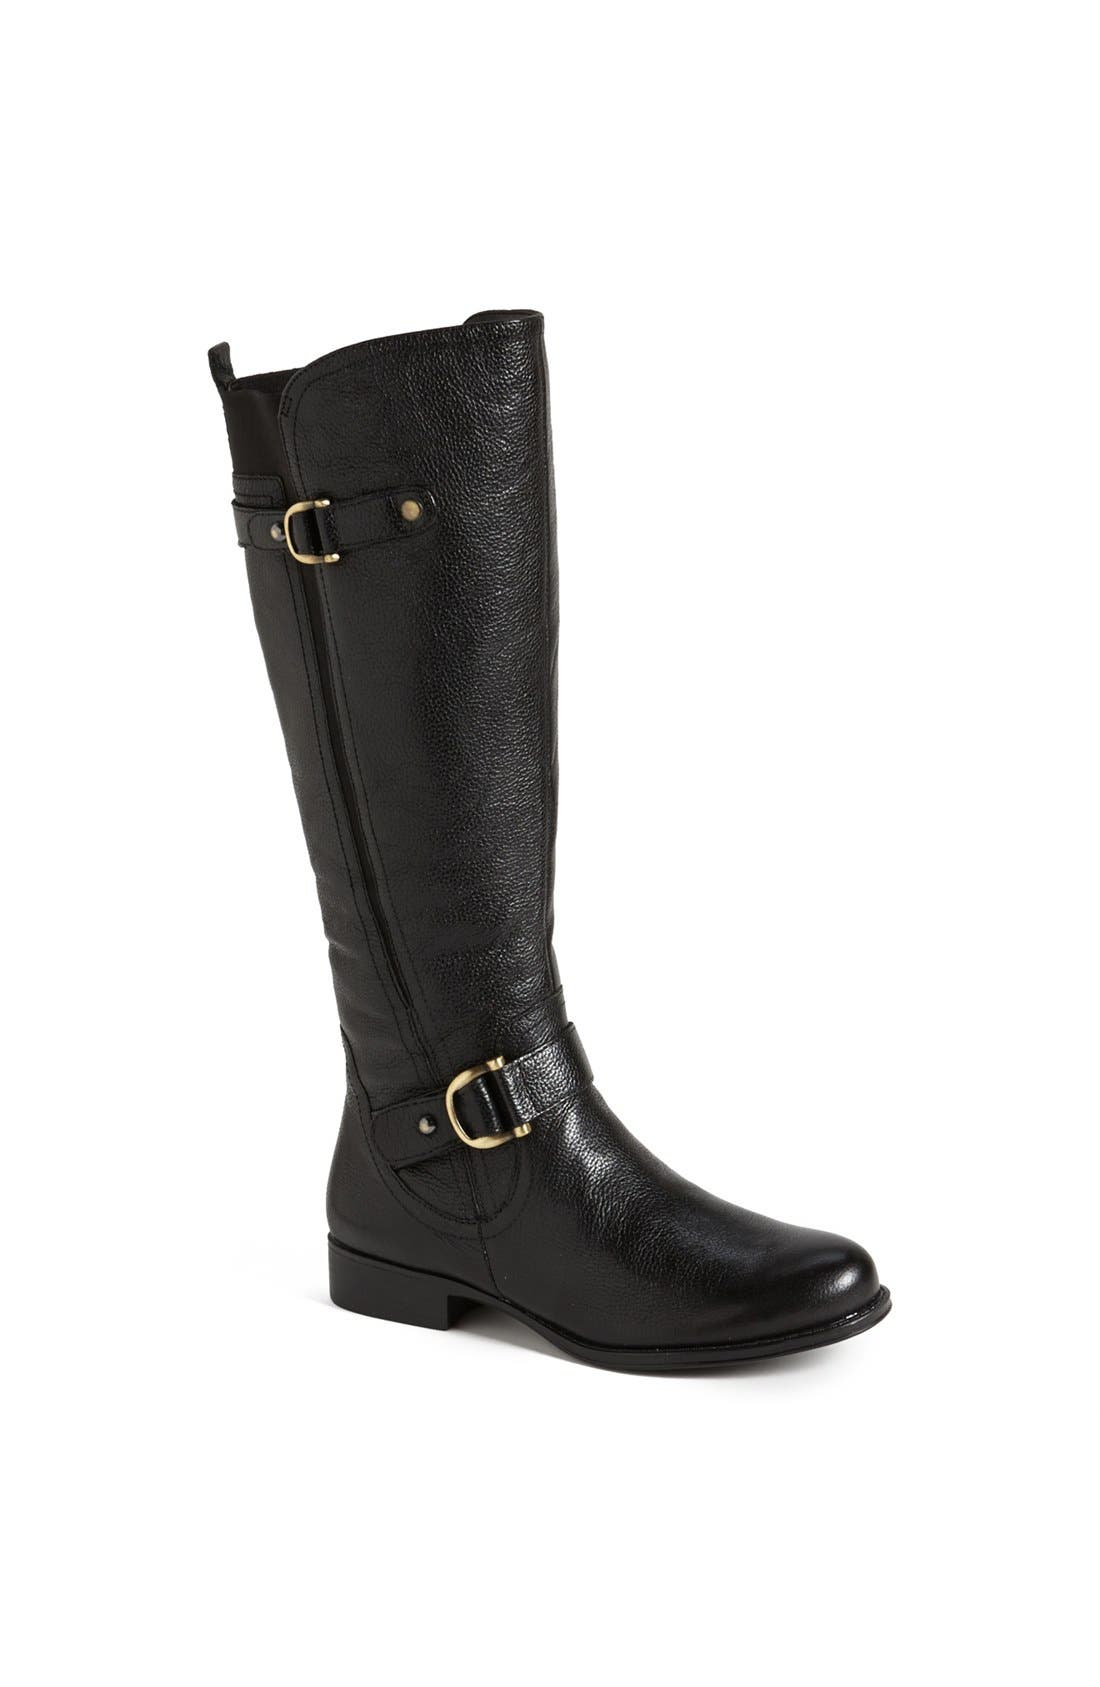 Alternate Image 1 Selected - Naturalizer 'Jersey' Leather Riding Boot